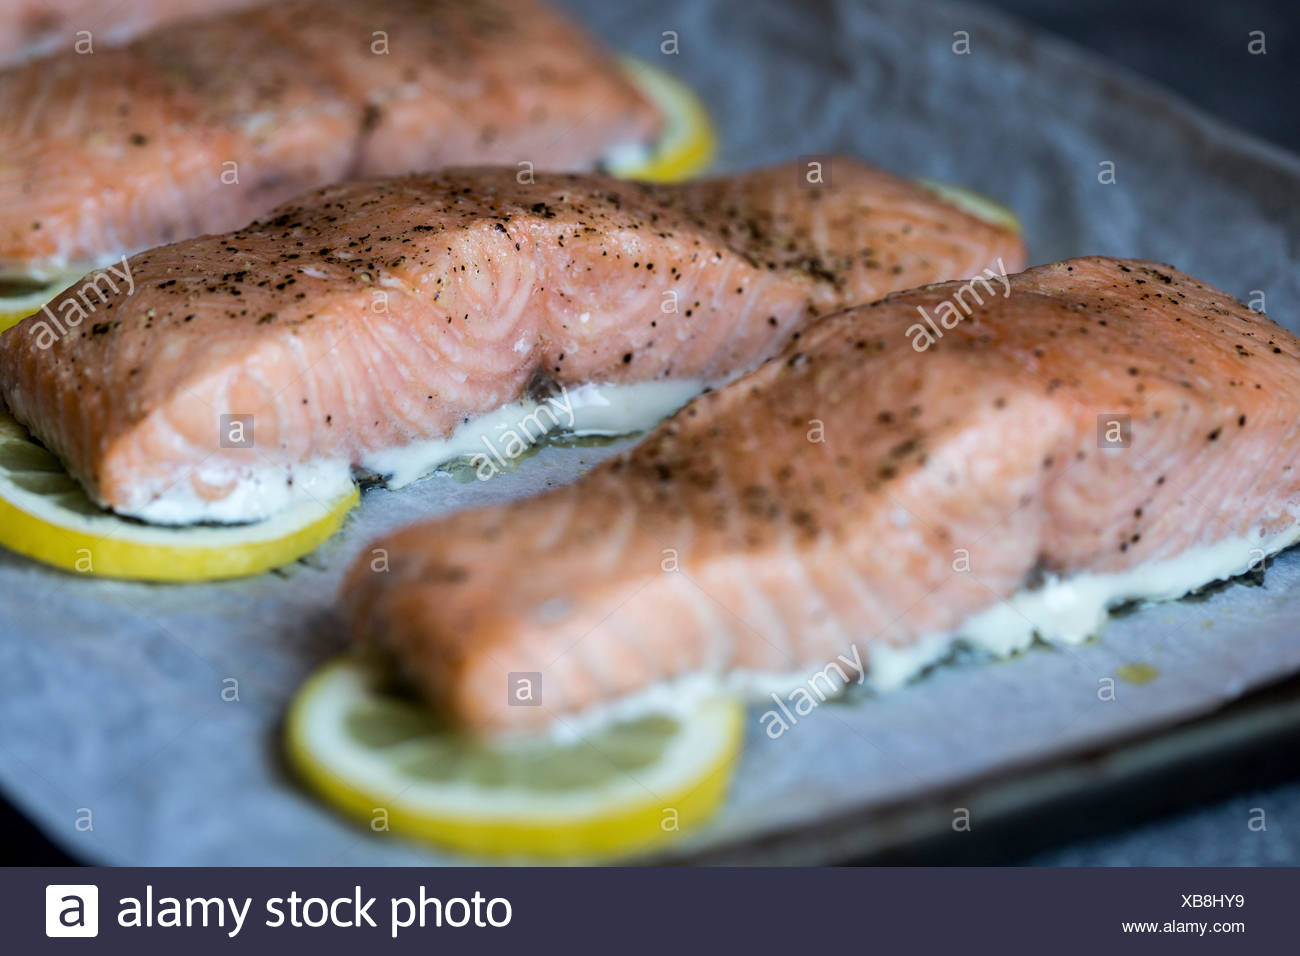 Slow-baked salmon slices are photographed right after they came out of the oven. Stock Photo